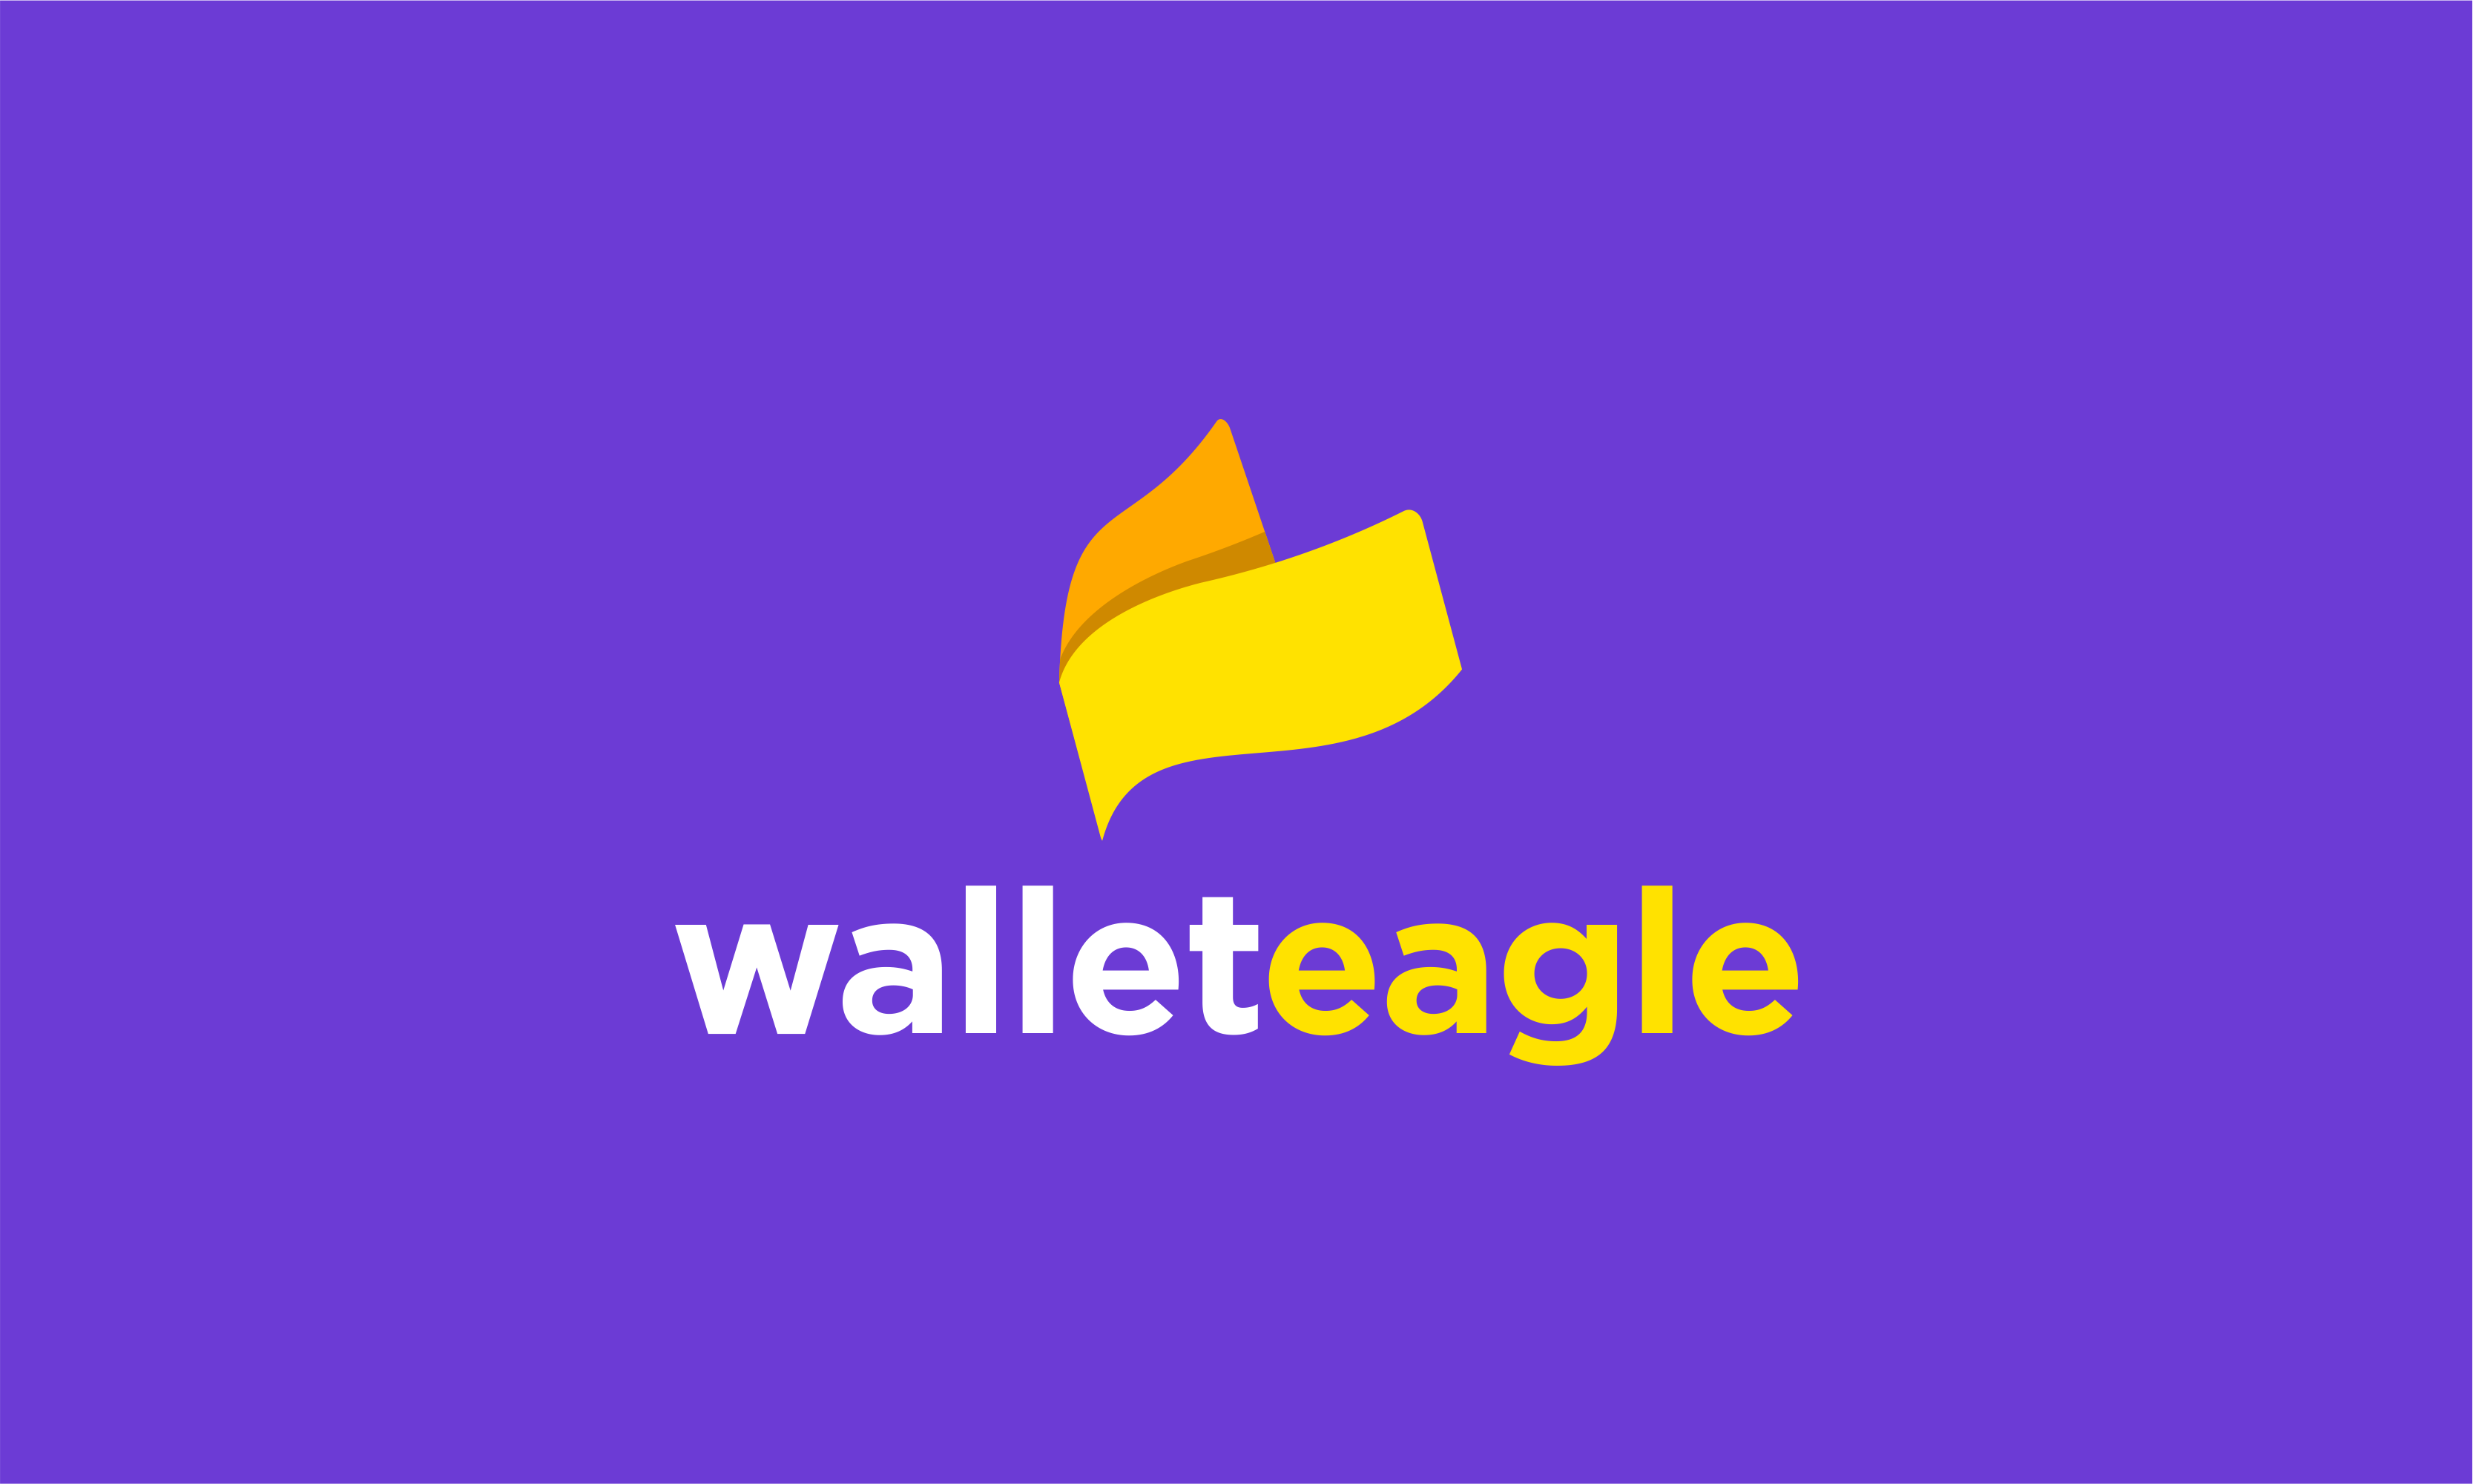 Walleteagle